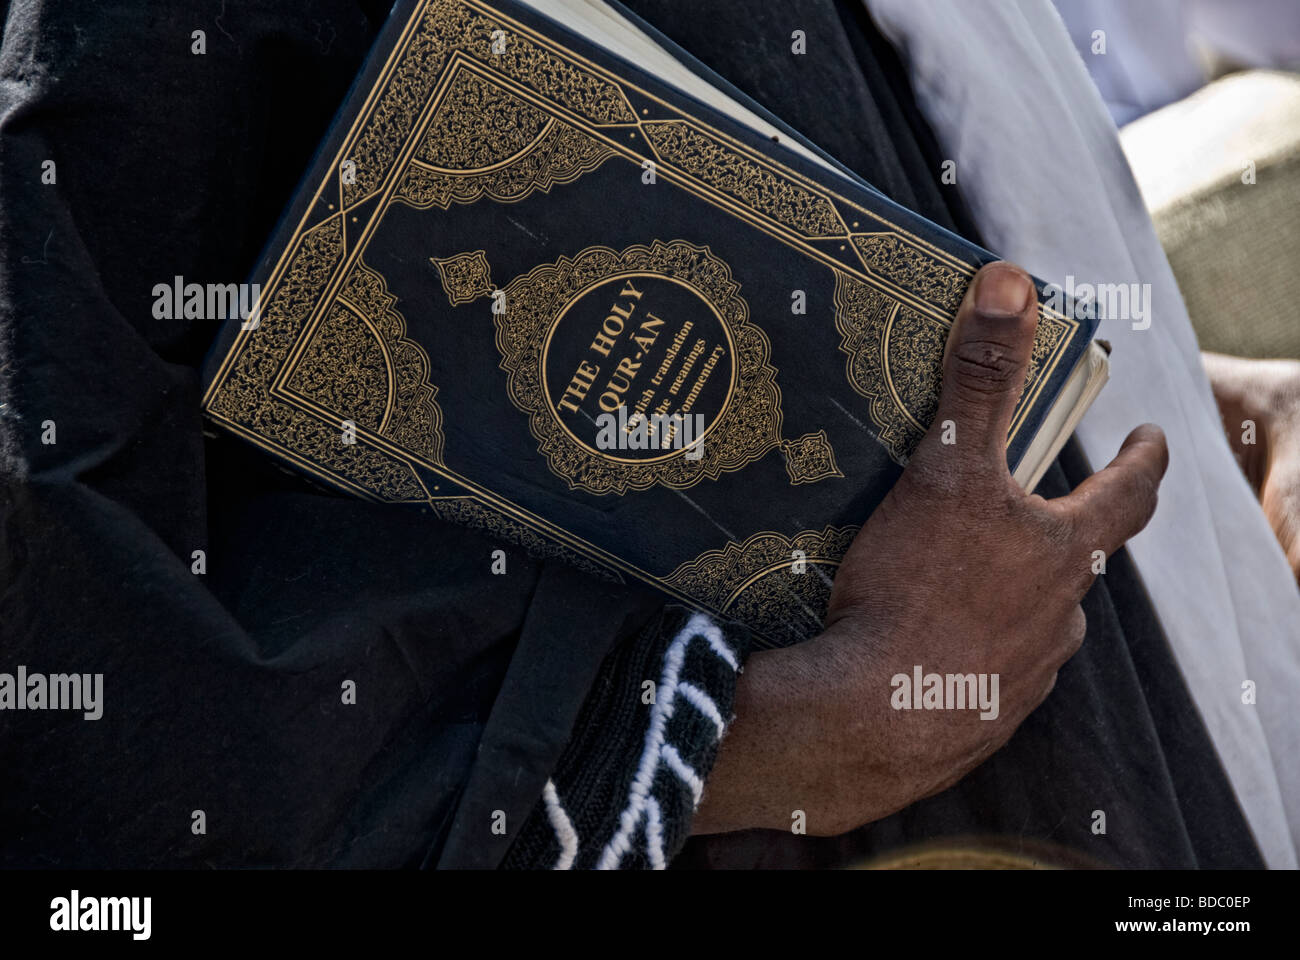 CLOSE UP SHOOT BLACK MAN HOLDING A QURAN - Stock Image